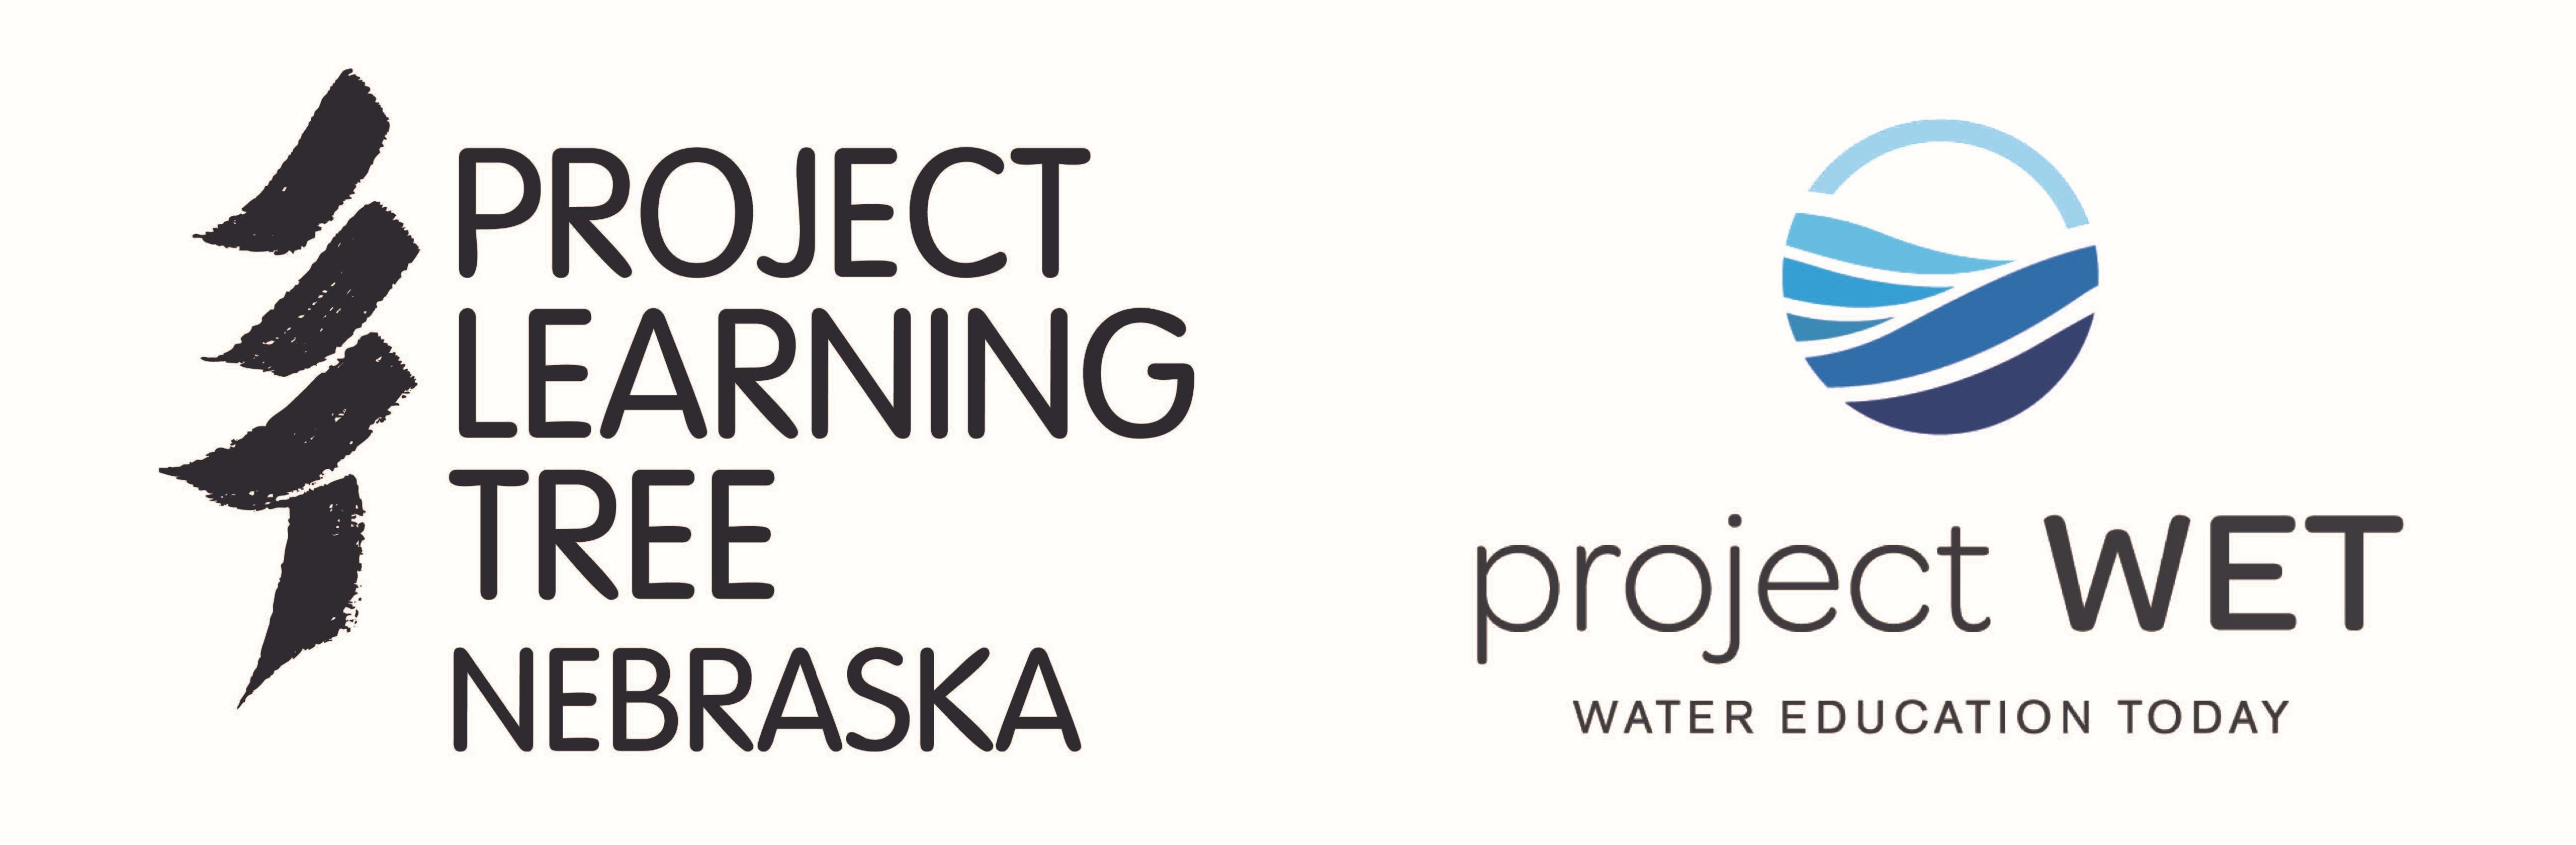 Project Learning Tree & Project WET